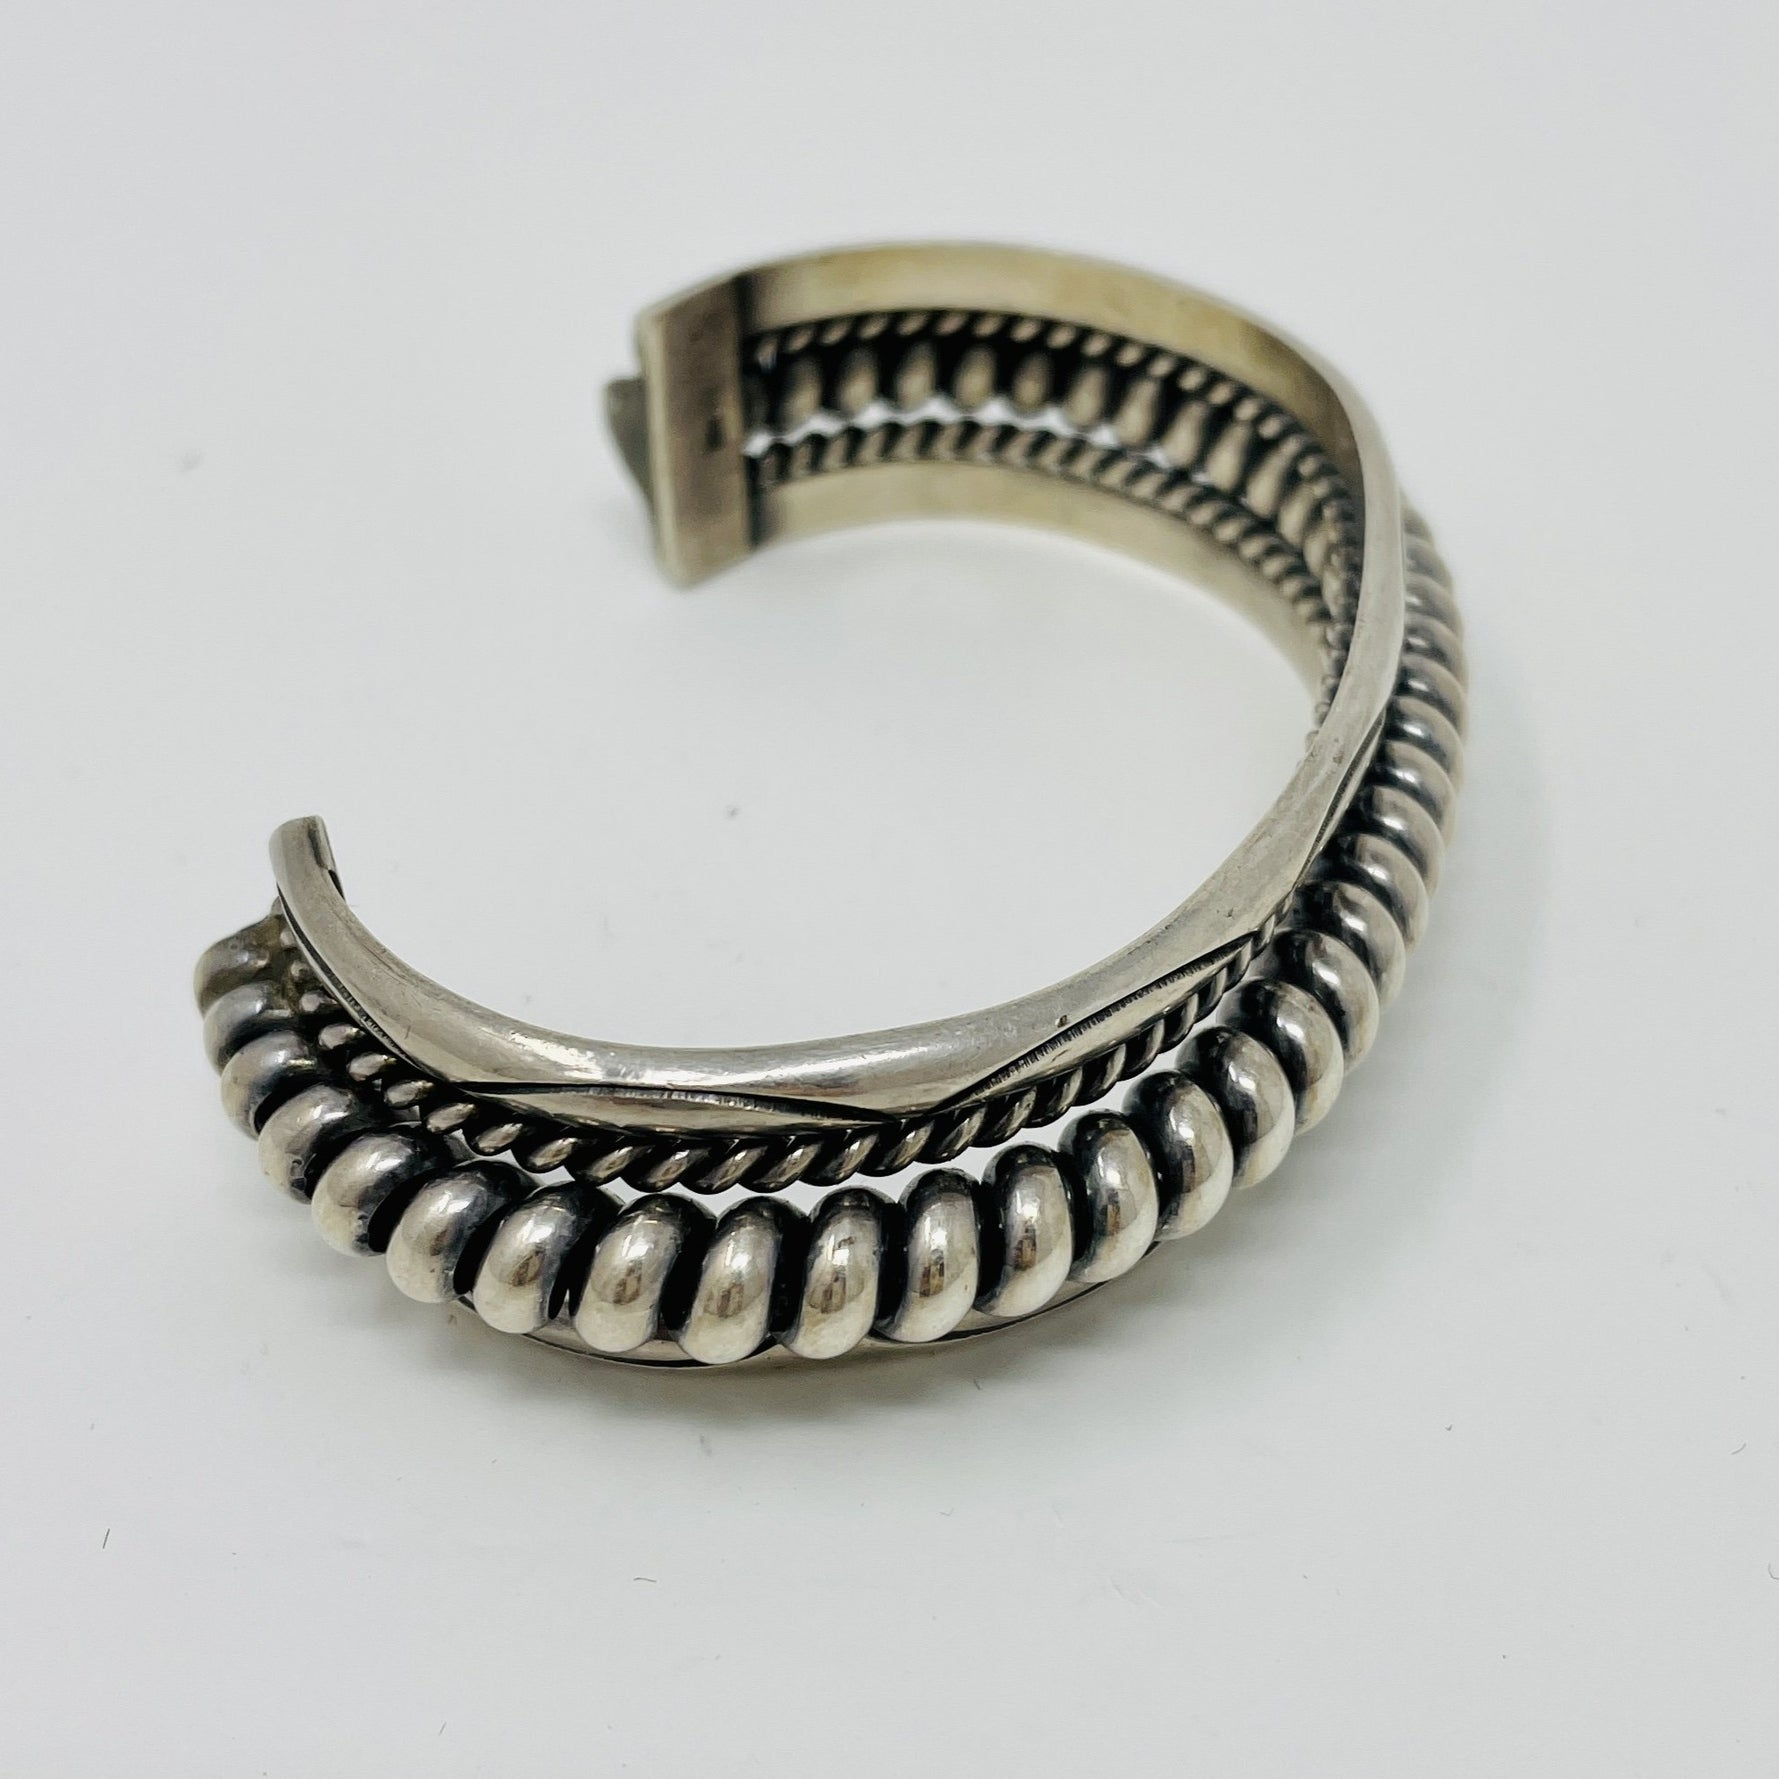 Navajo Silver Cuff with Spiral Center Surrounded by Smaller Spirals and Stampwork